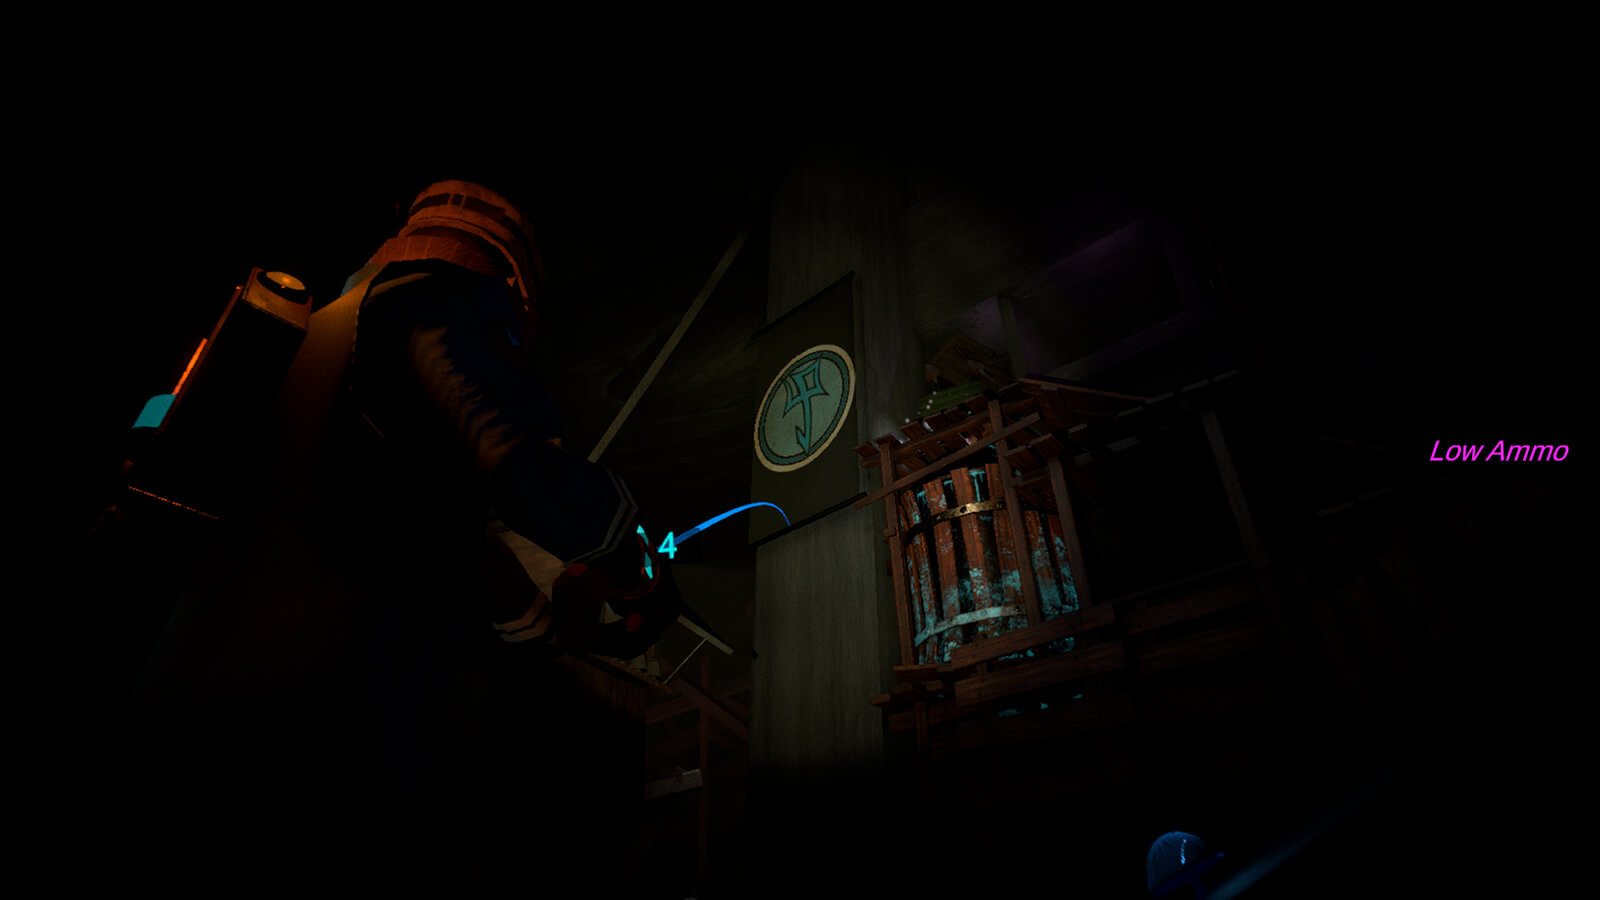 A man in a blue coat crouches through a very dark shaft, a glowing red eye in the distance.